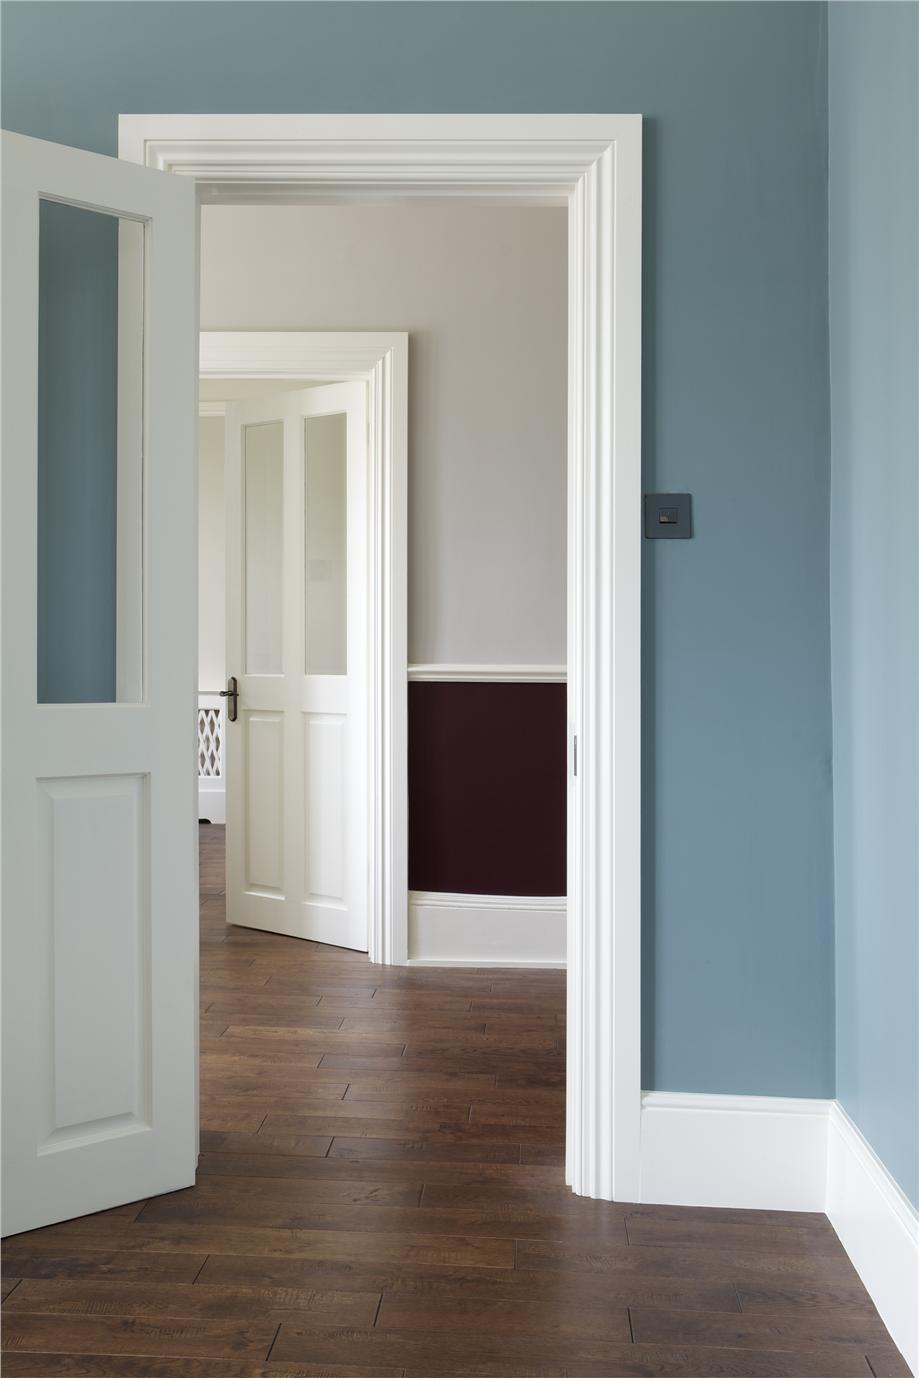 hall in oval room blue cornforth white brinjal contributed by farrow ball - Farrow And Ball Brinjal